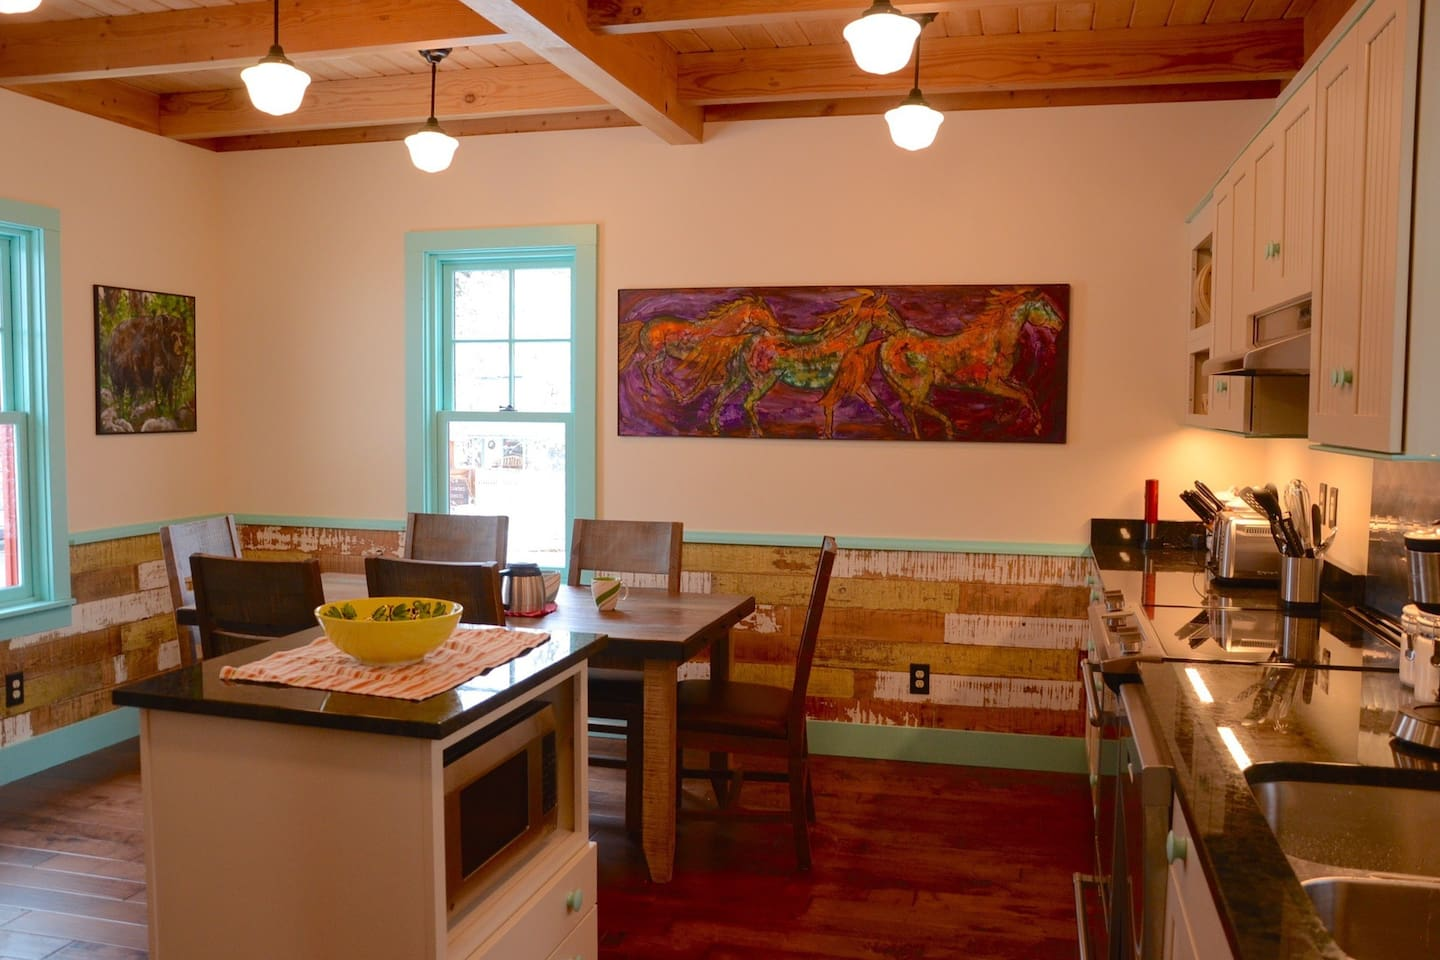 the full and very charming kitchen.